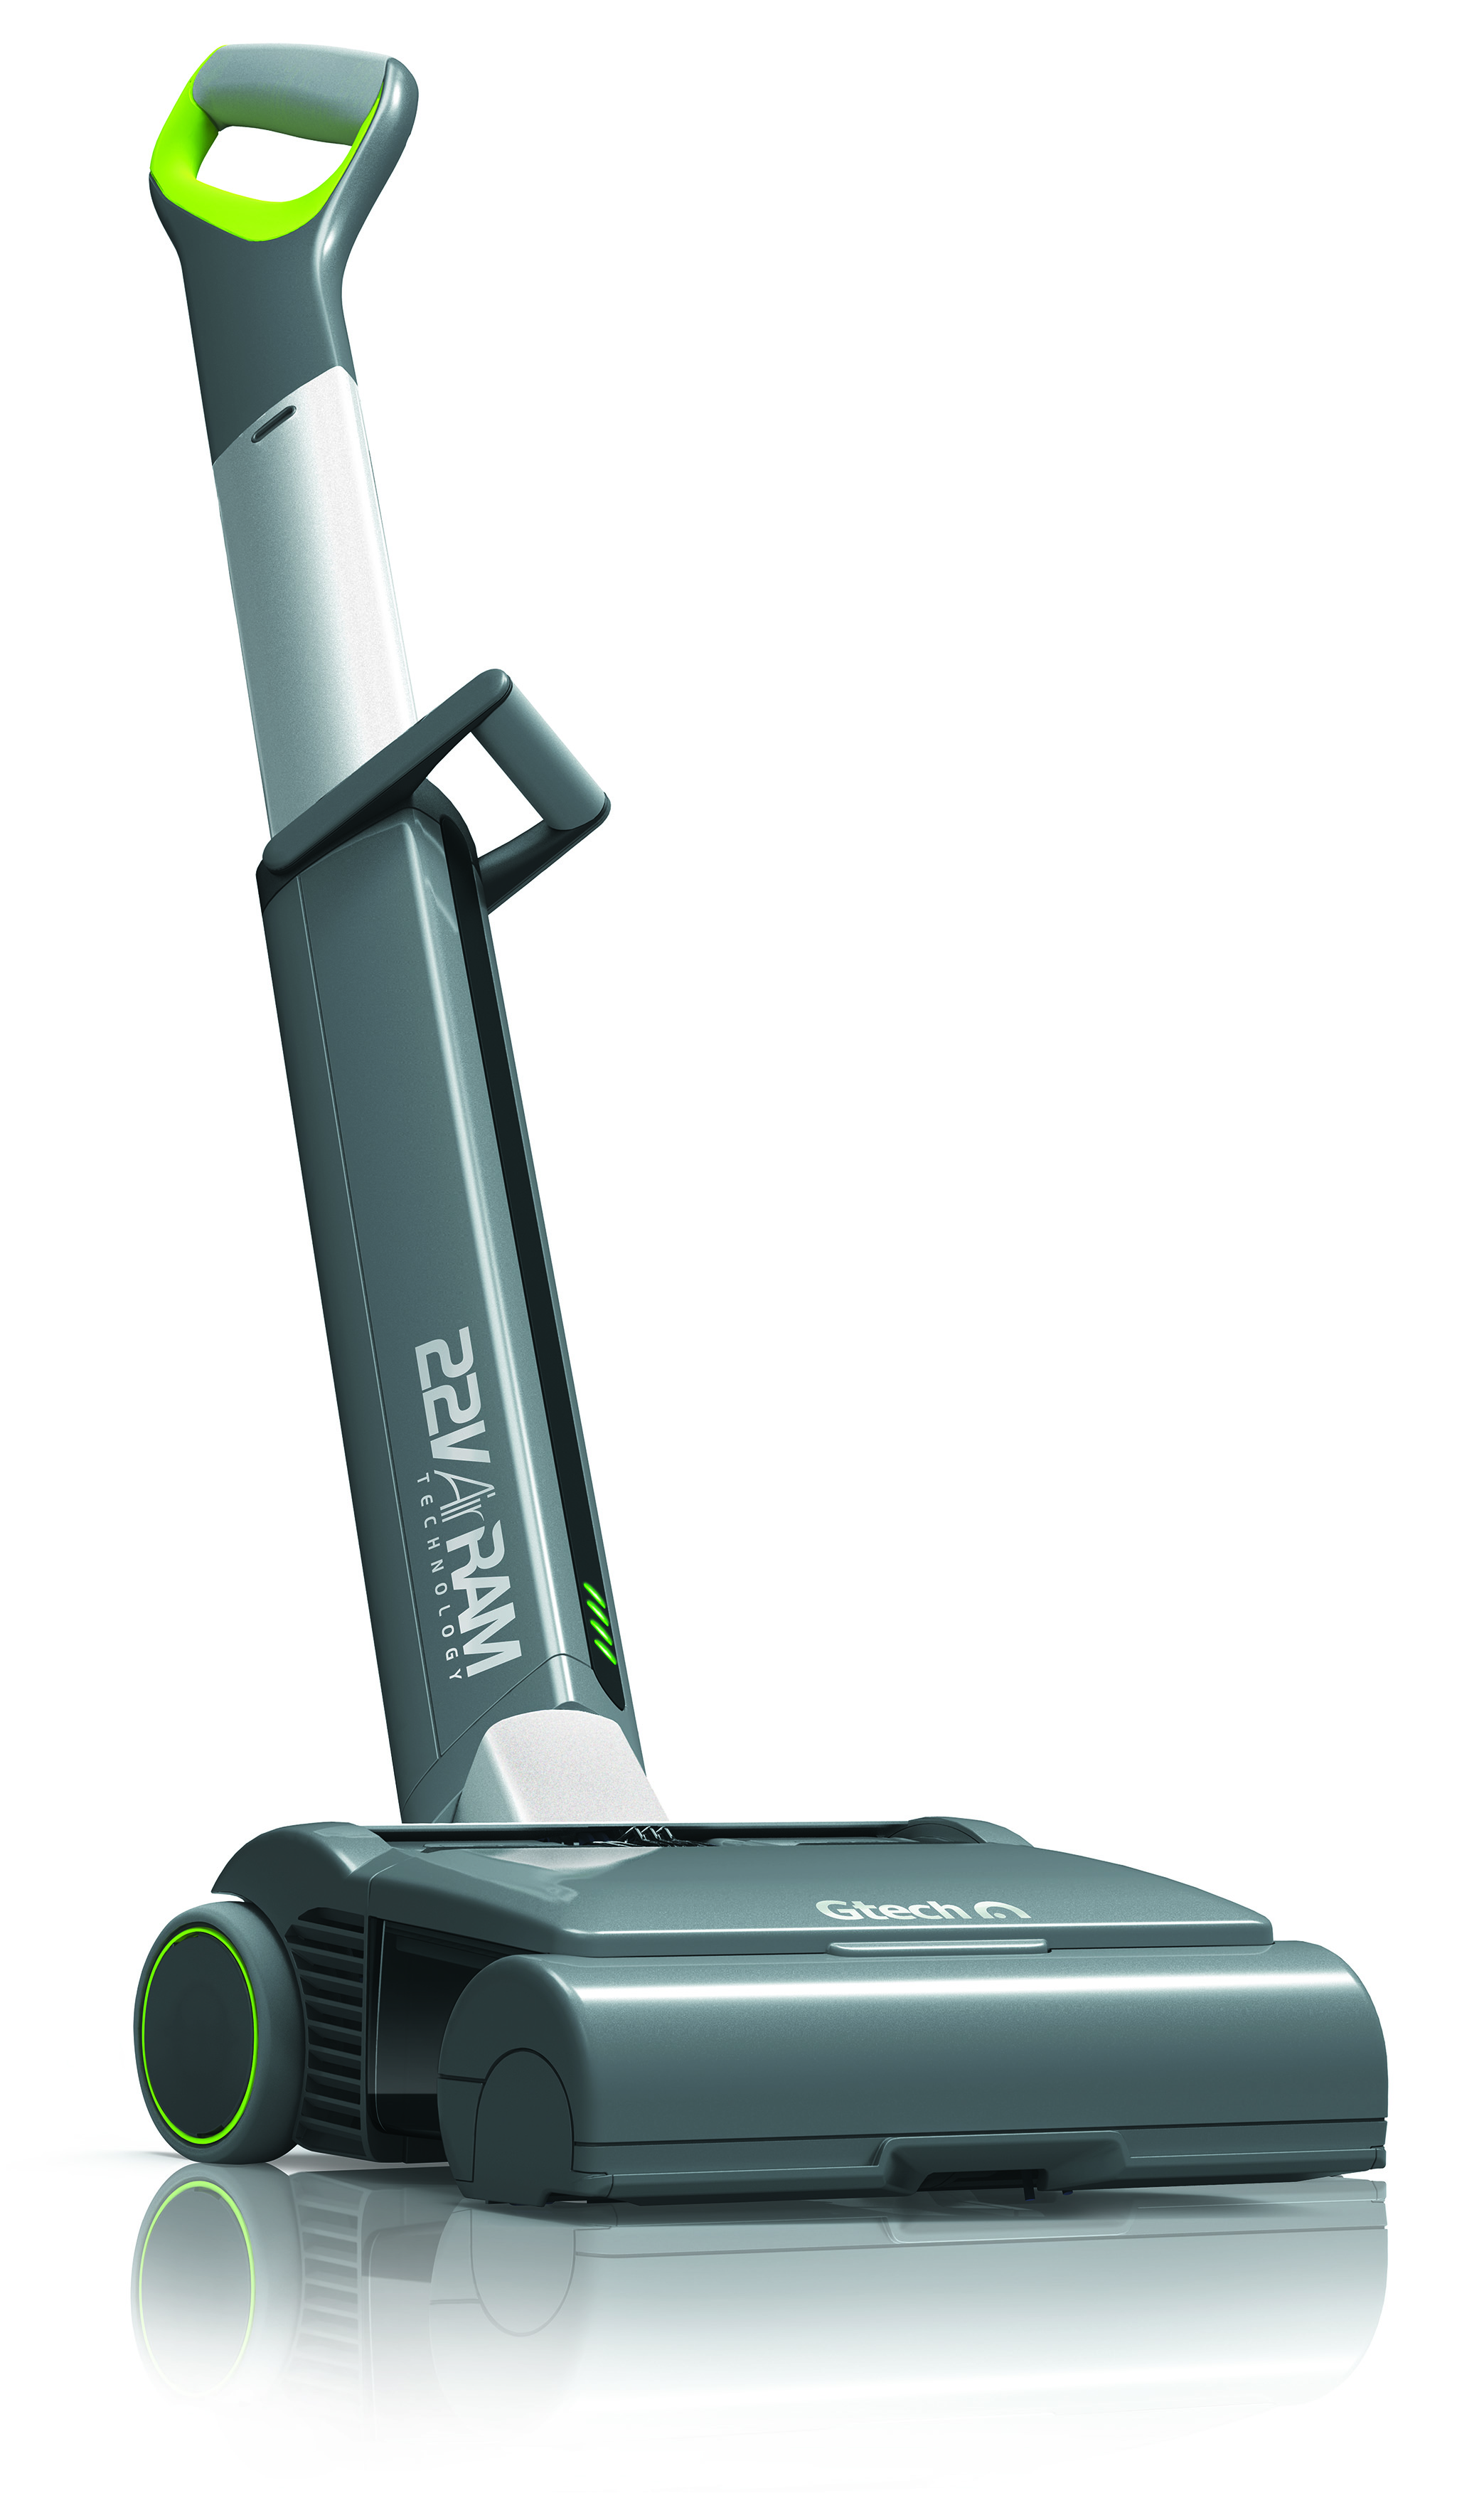 Gtech AirRam GBP199 Lovevacuuming